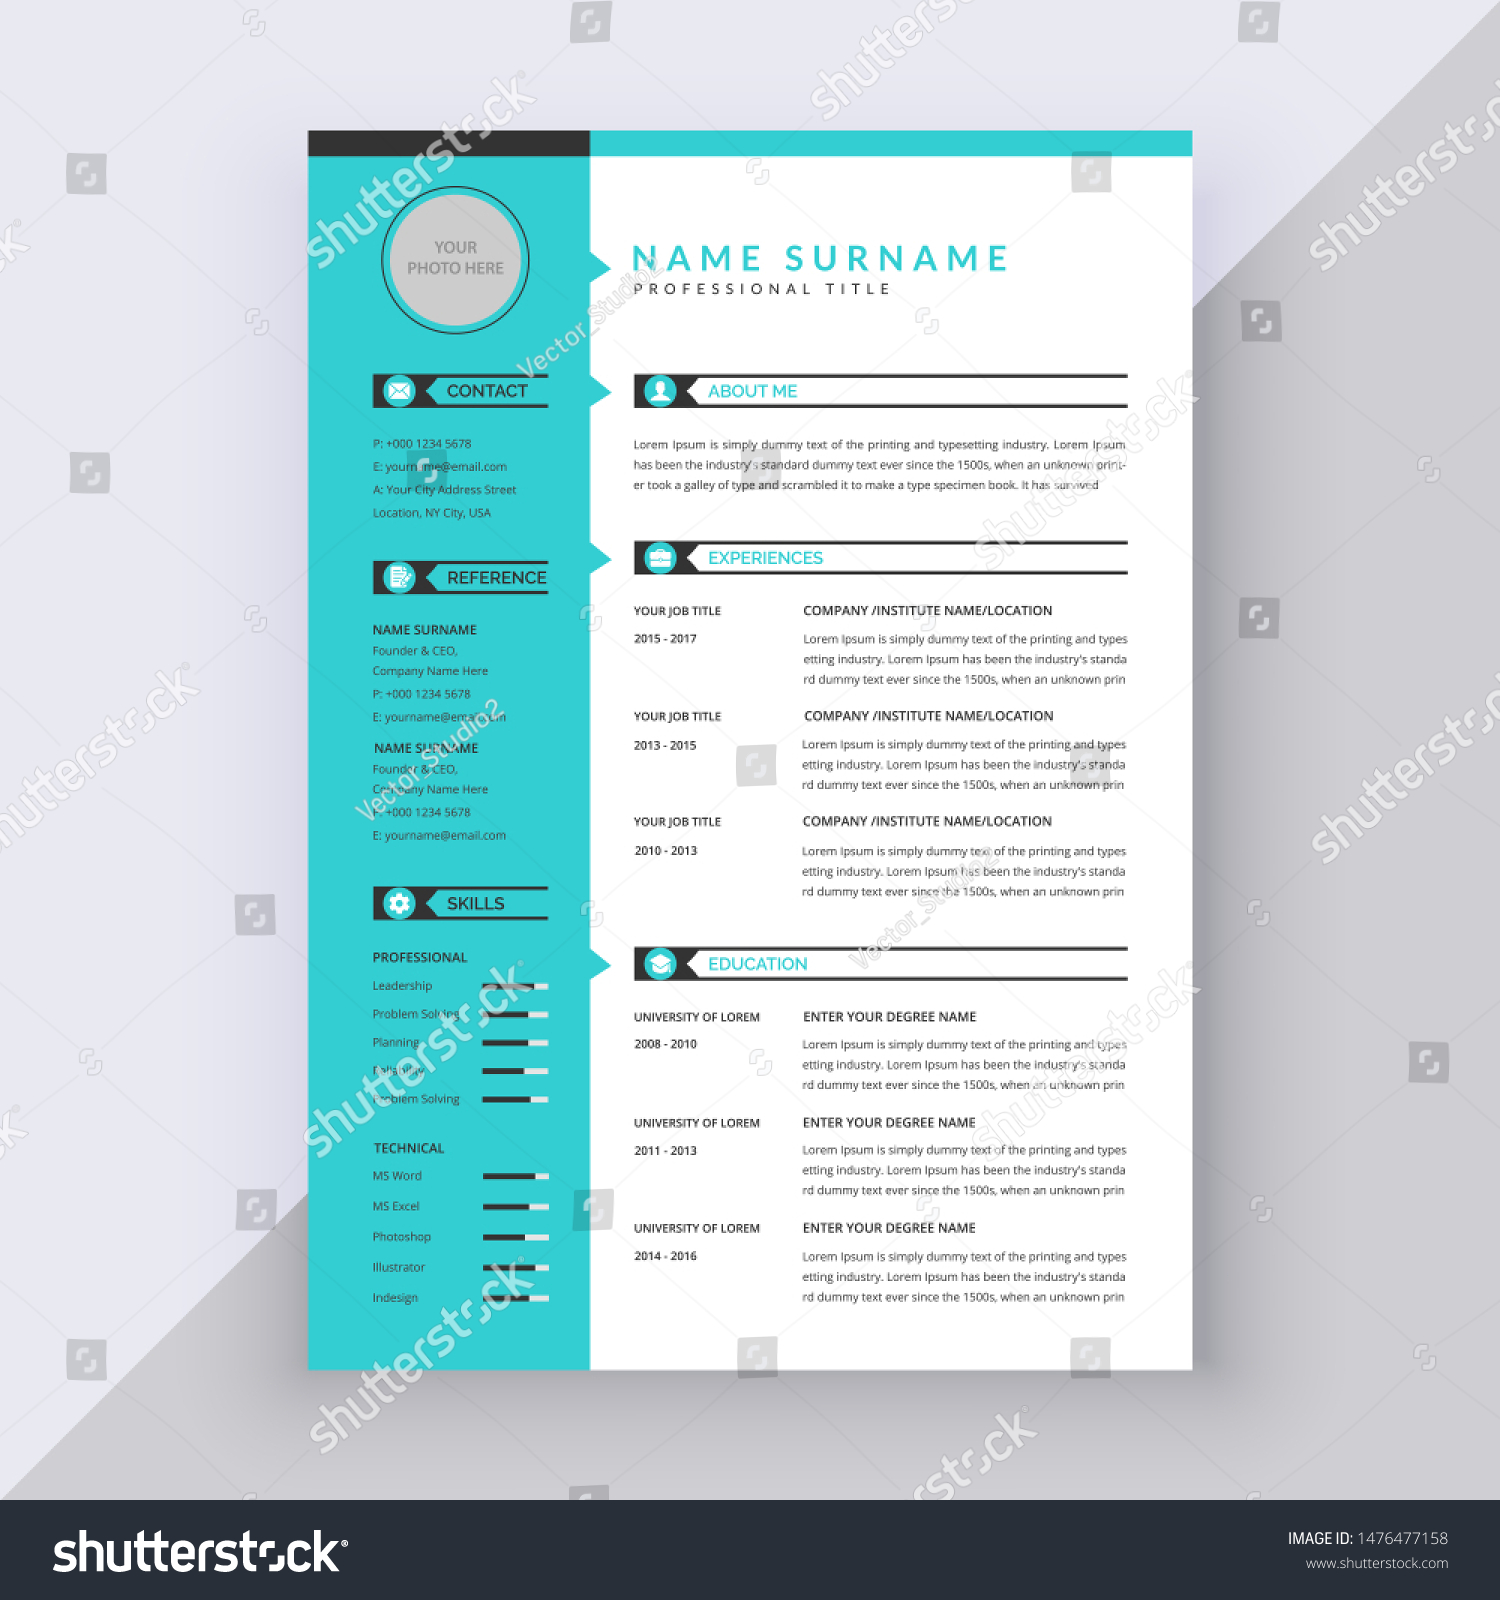 Creative Minimal Clean Blue Cv Resume Stock Vector Royalty Free 1476477158